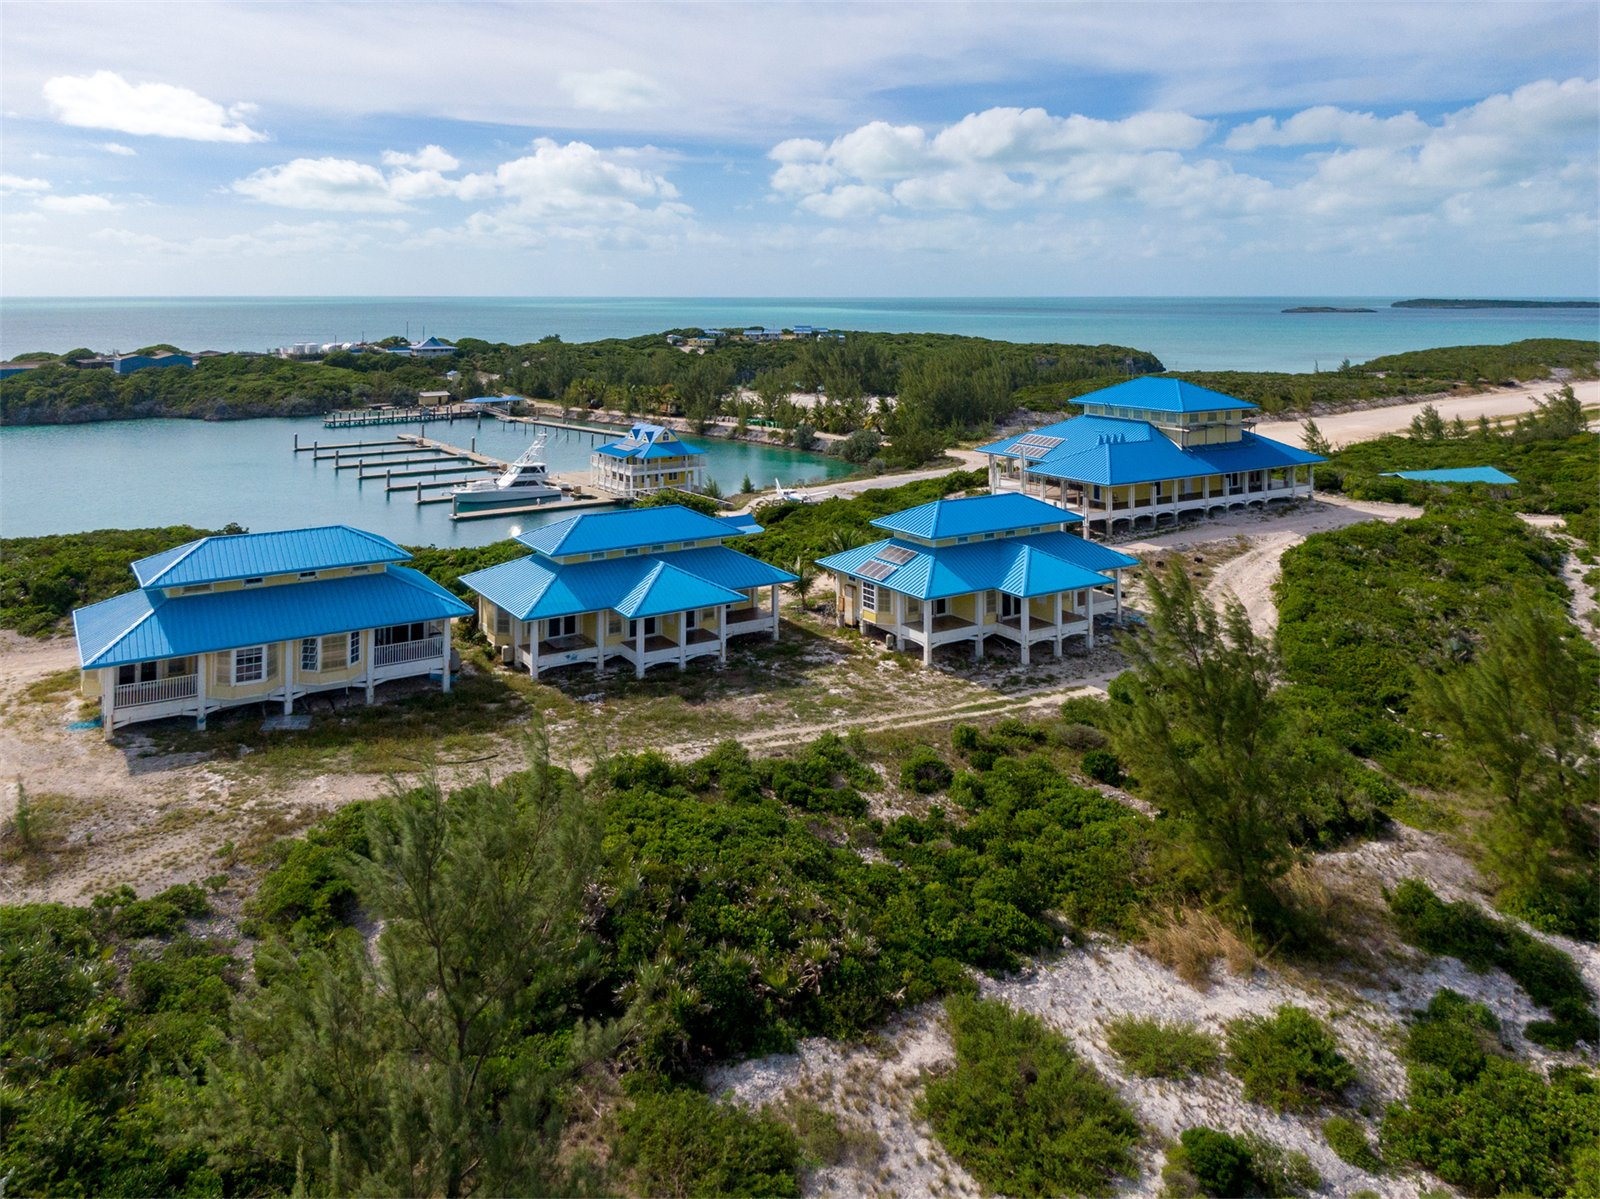 Private Island in Farmer's Hill, Exuma, The Bahamas 1